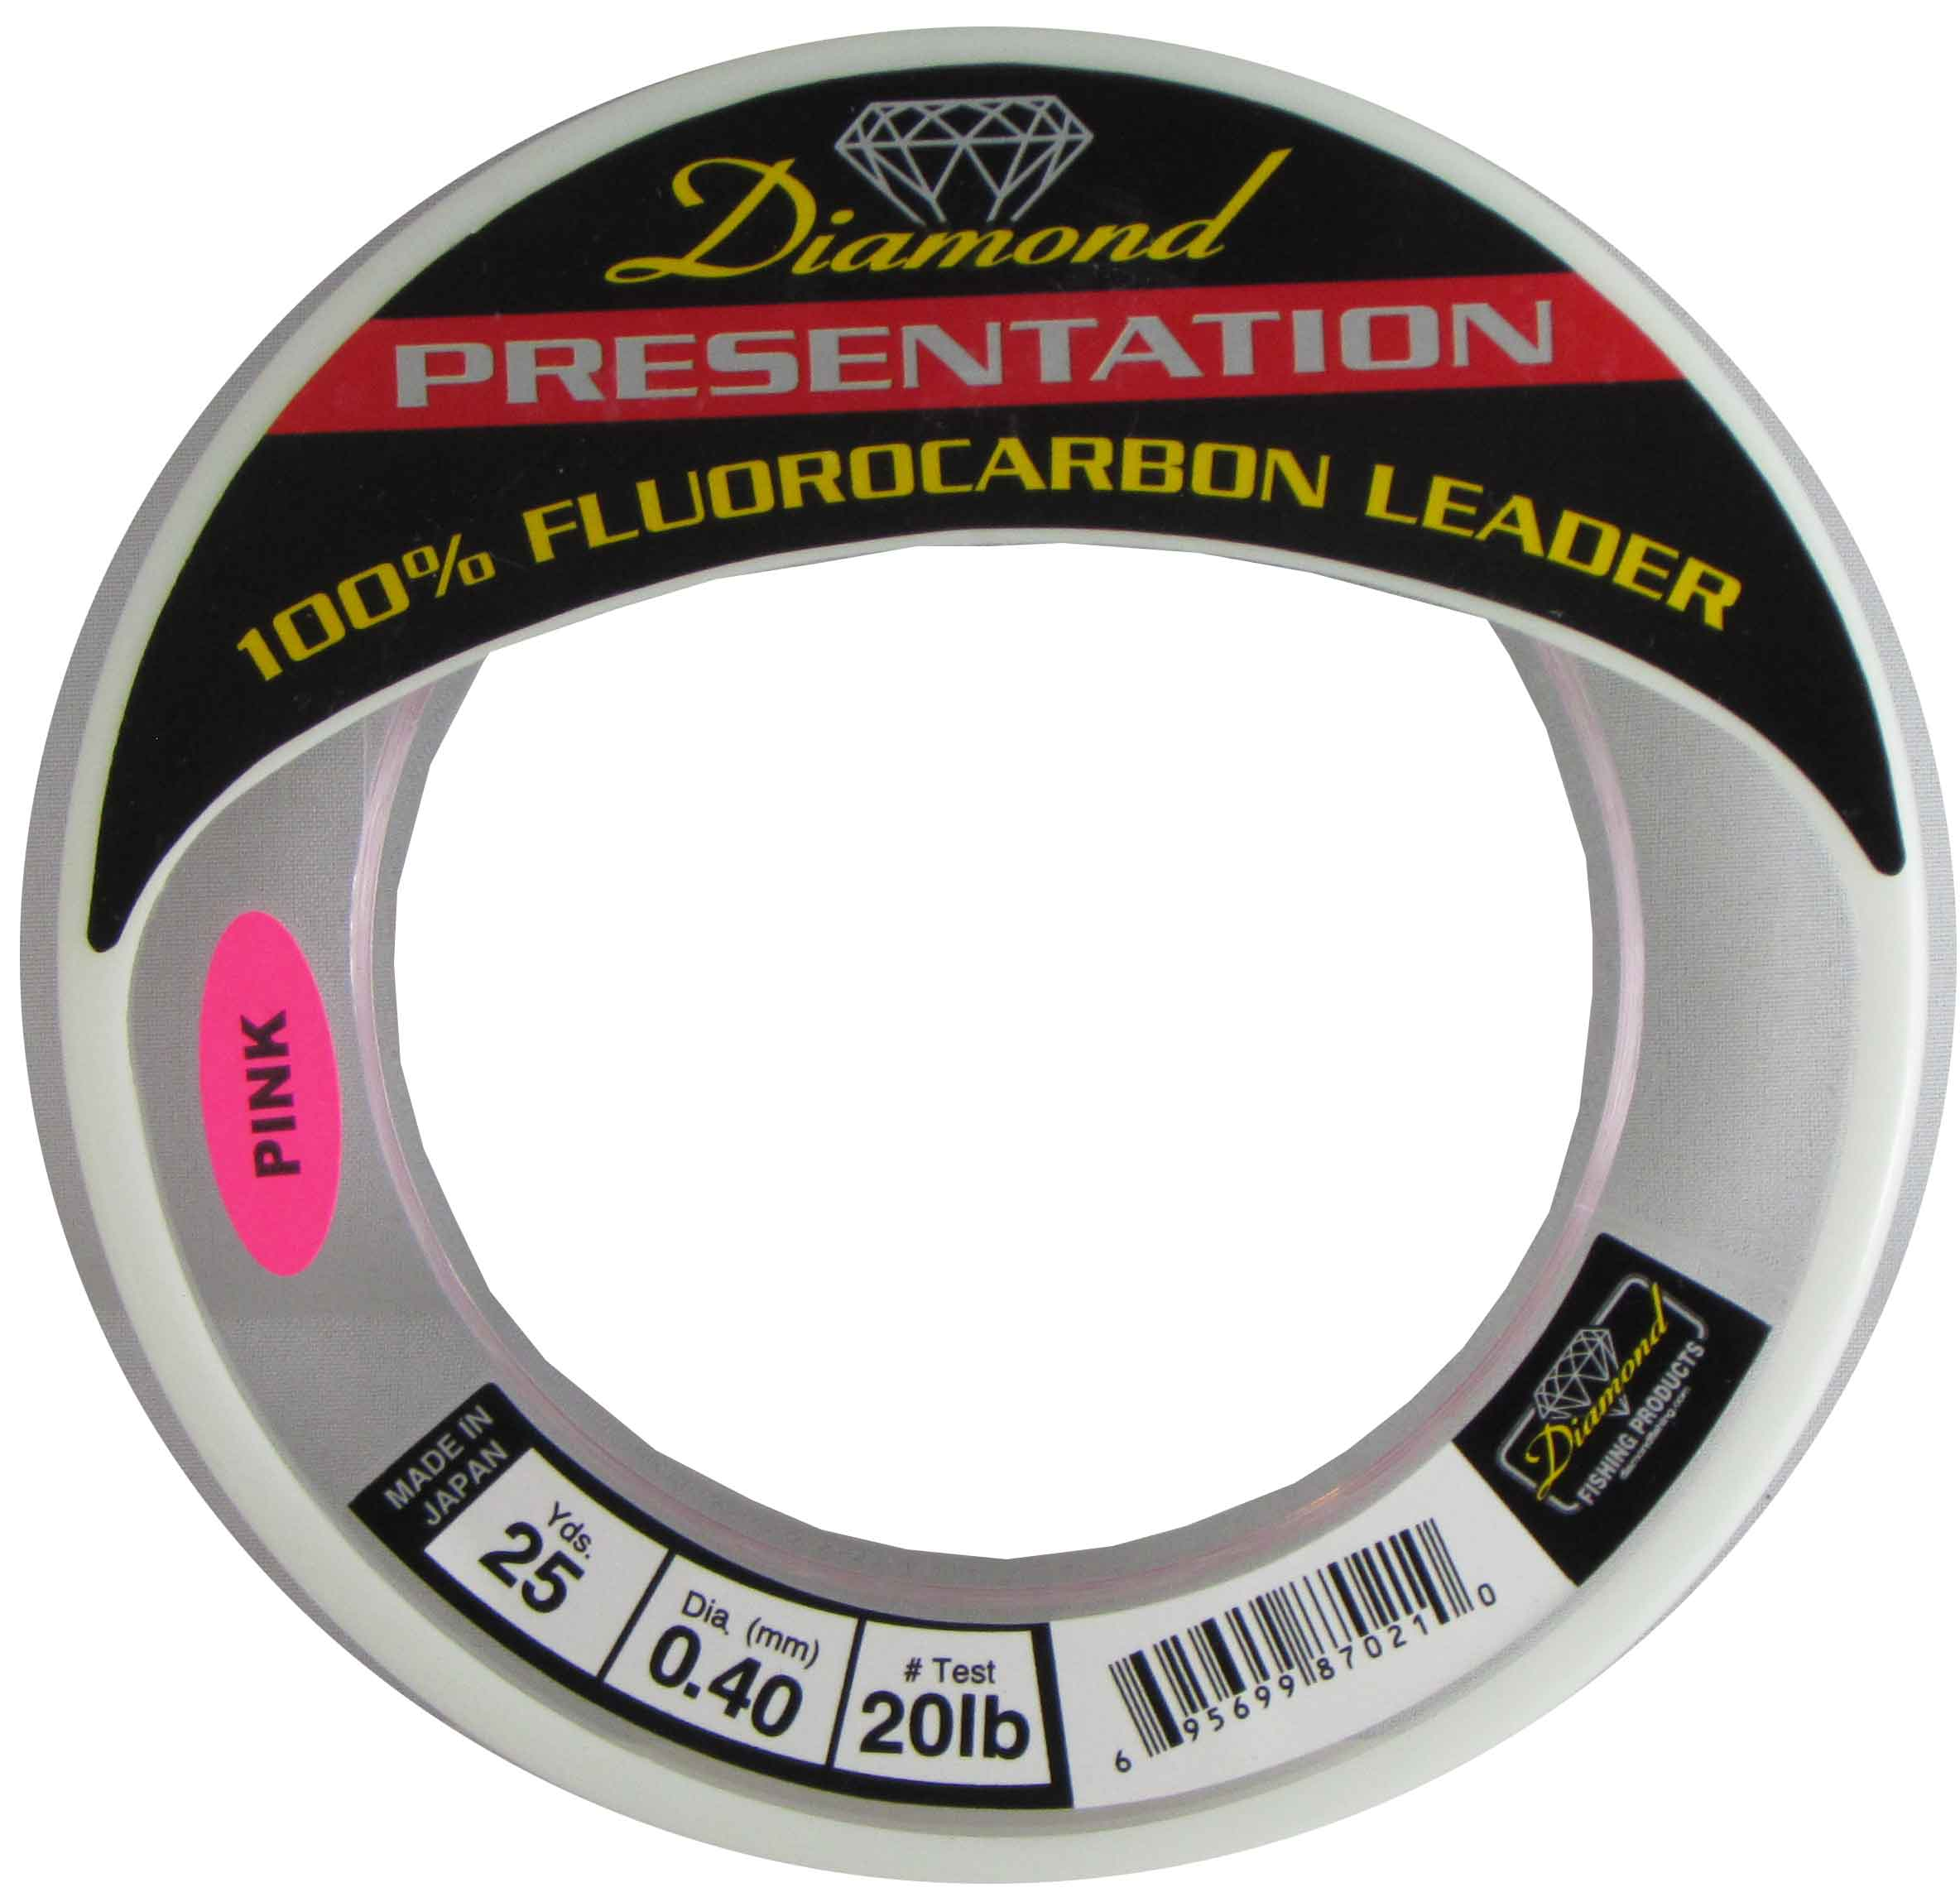 MOMOI Diamond Presentation Fluorocarbon Leader 20Lb Test 25Yds Pink